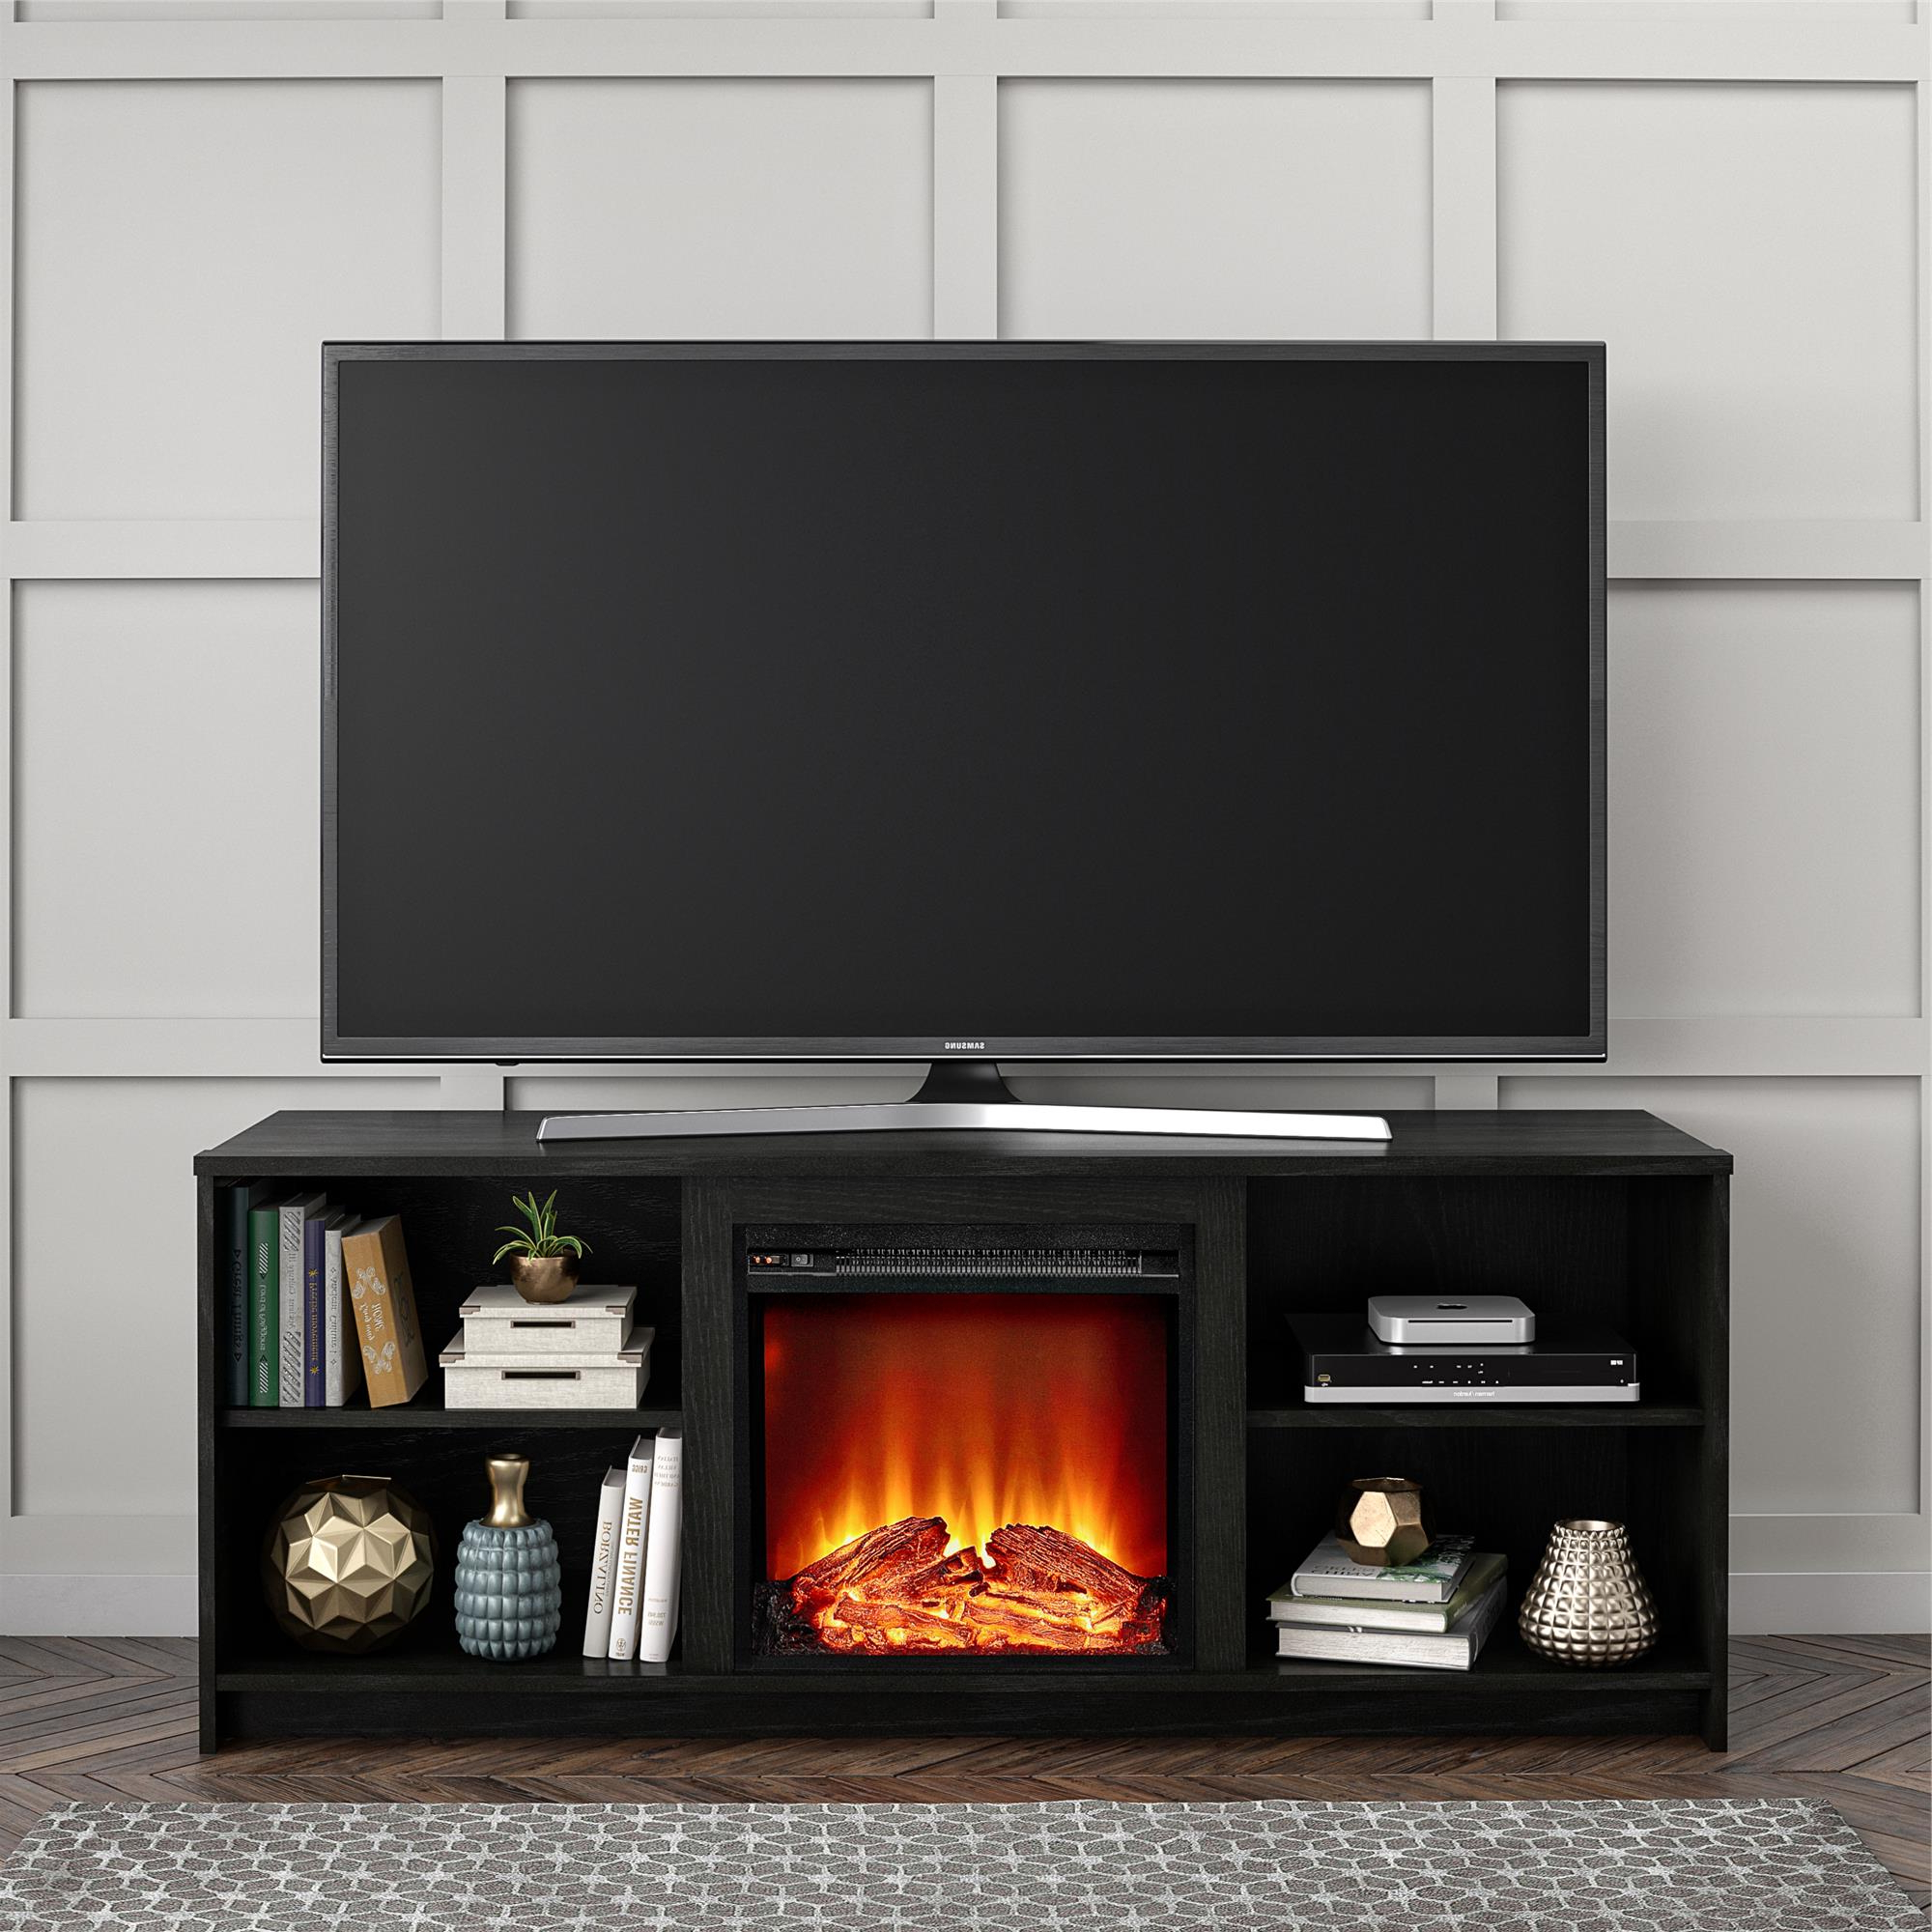 """Fashionable Mainstays Fireplace Tv Stand For Tvs Up To 65"""", Black Oak Throughout Edgeware Black Tv Stands (View 9 of 10)"""